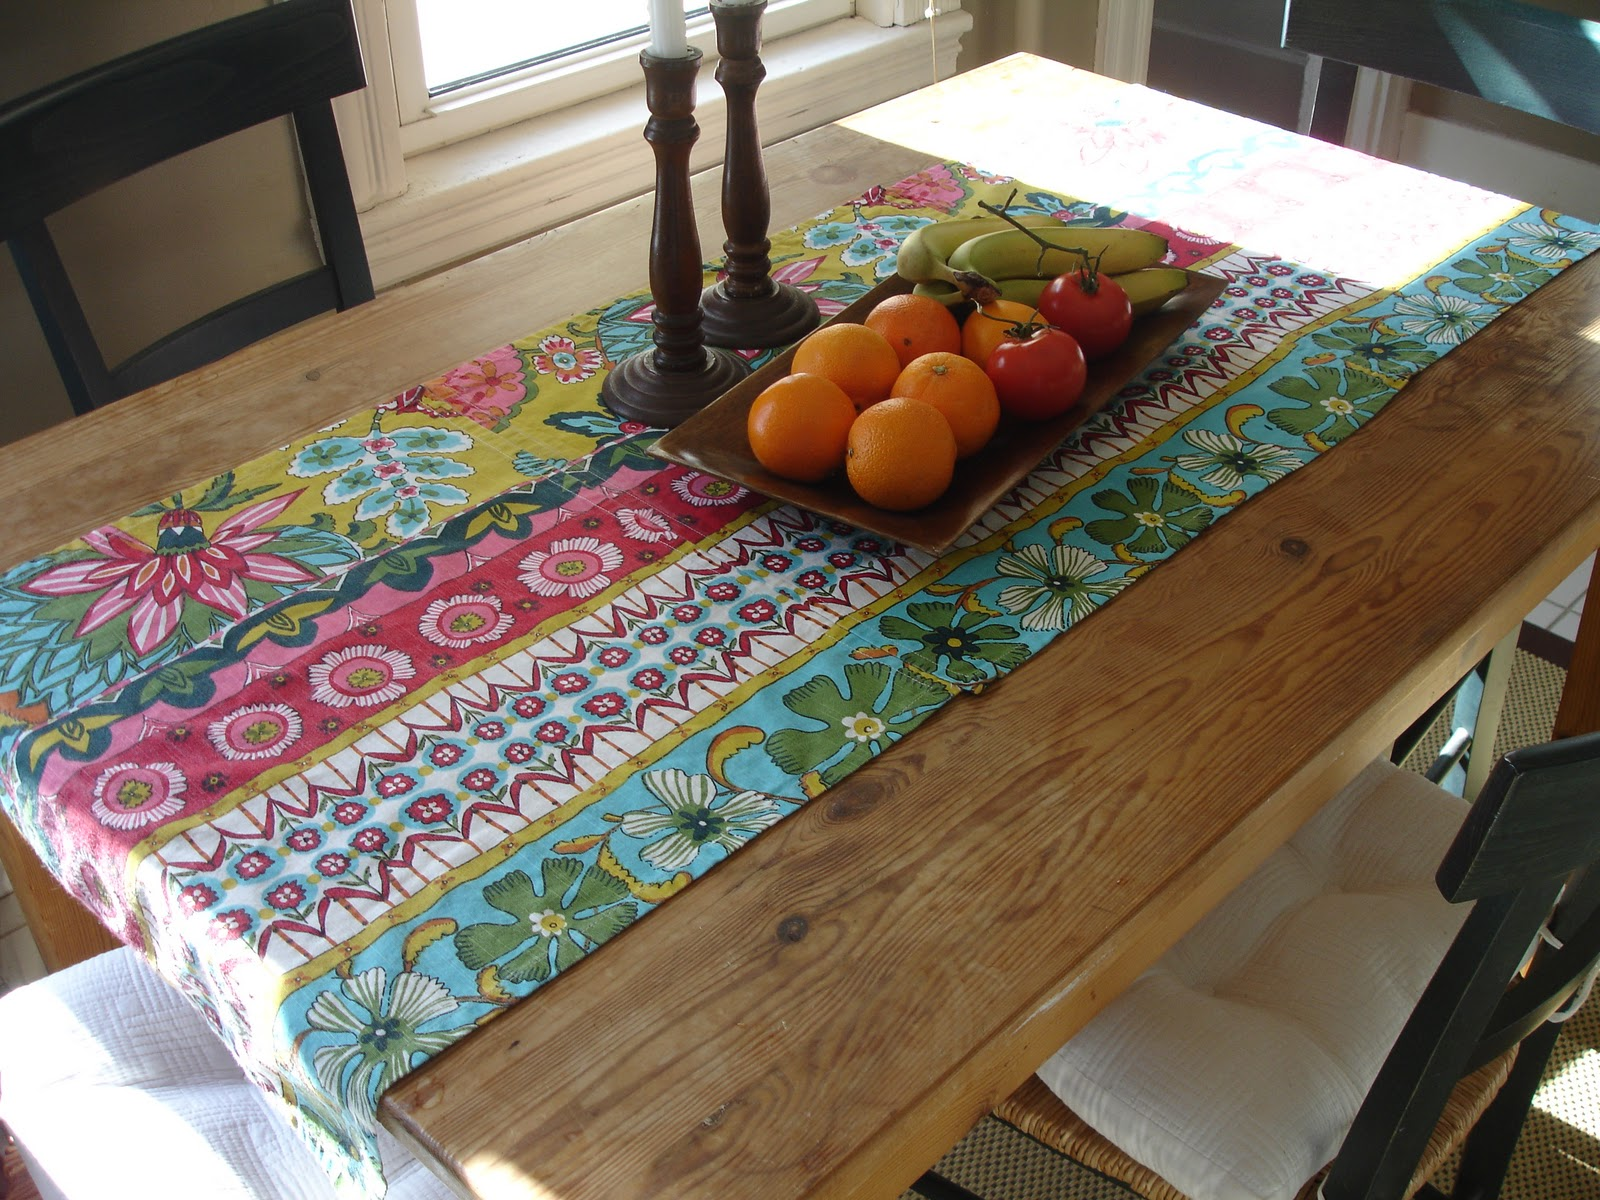 loft cottage diy how to make a no sew table runner from dinner napkins. Black Bedroom Furniture Sets. Home Design Ideas